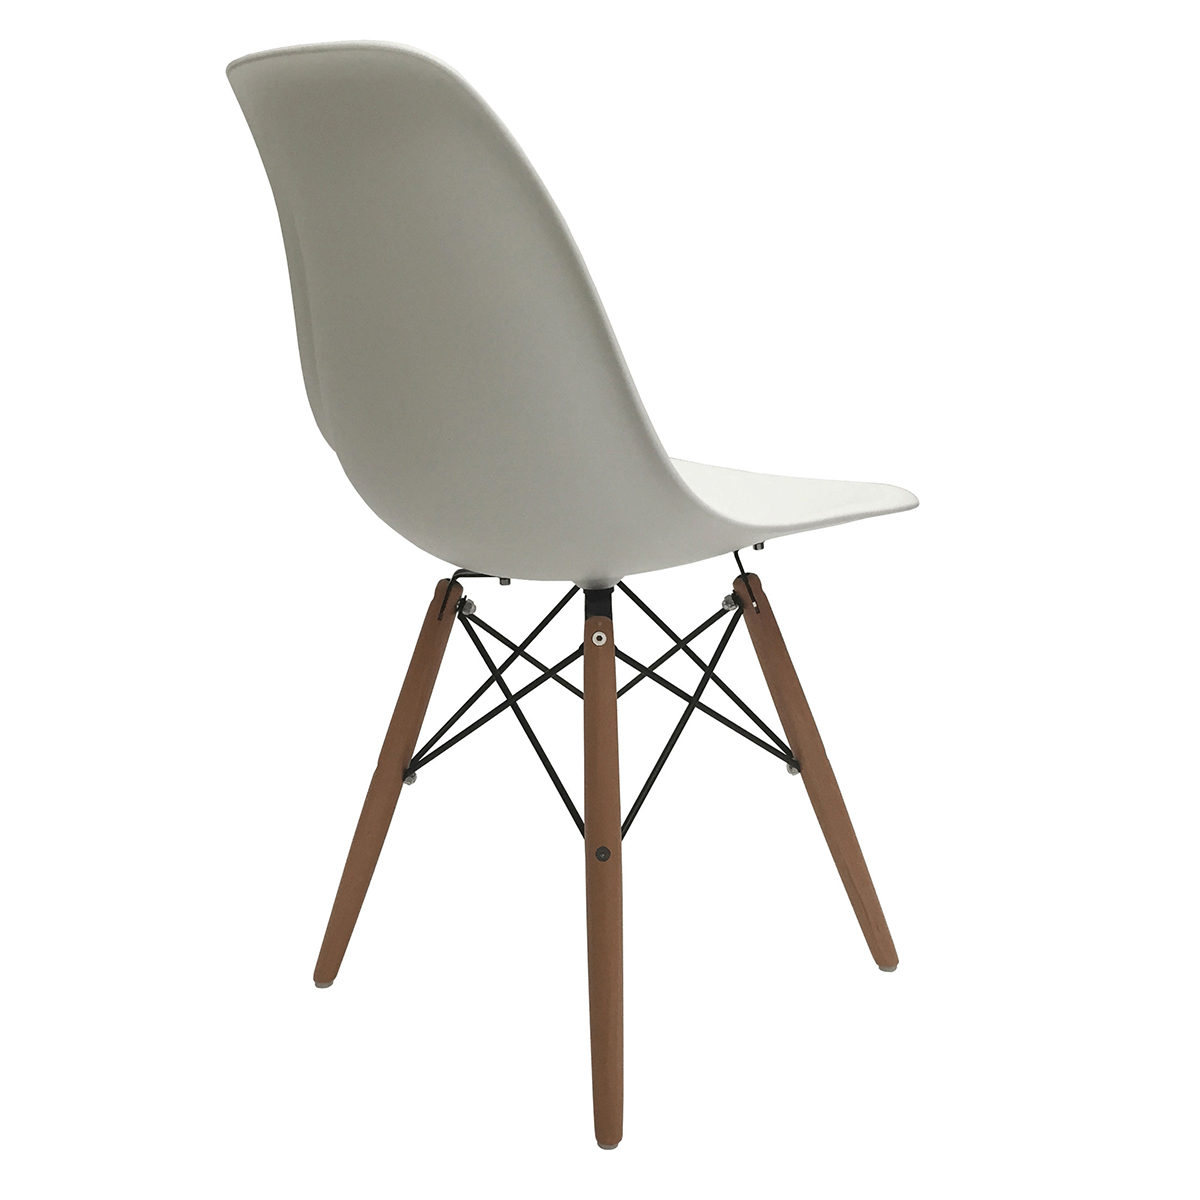 Eames Molded Plastic Chair Knockoff Set Of 4 Eiffel Molded Plastic Side Dining Chairs Eames